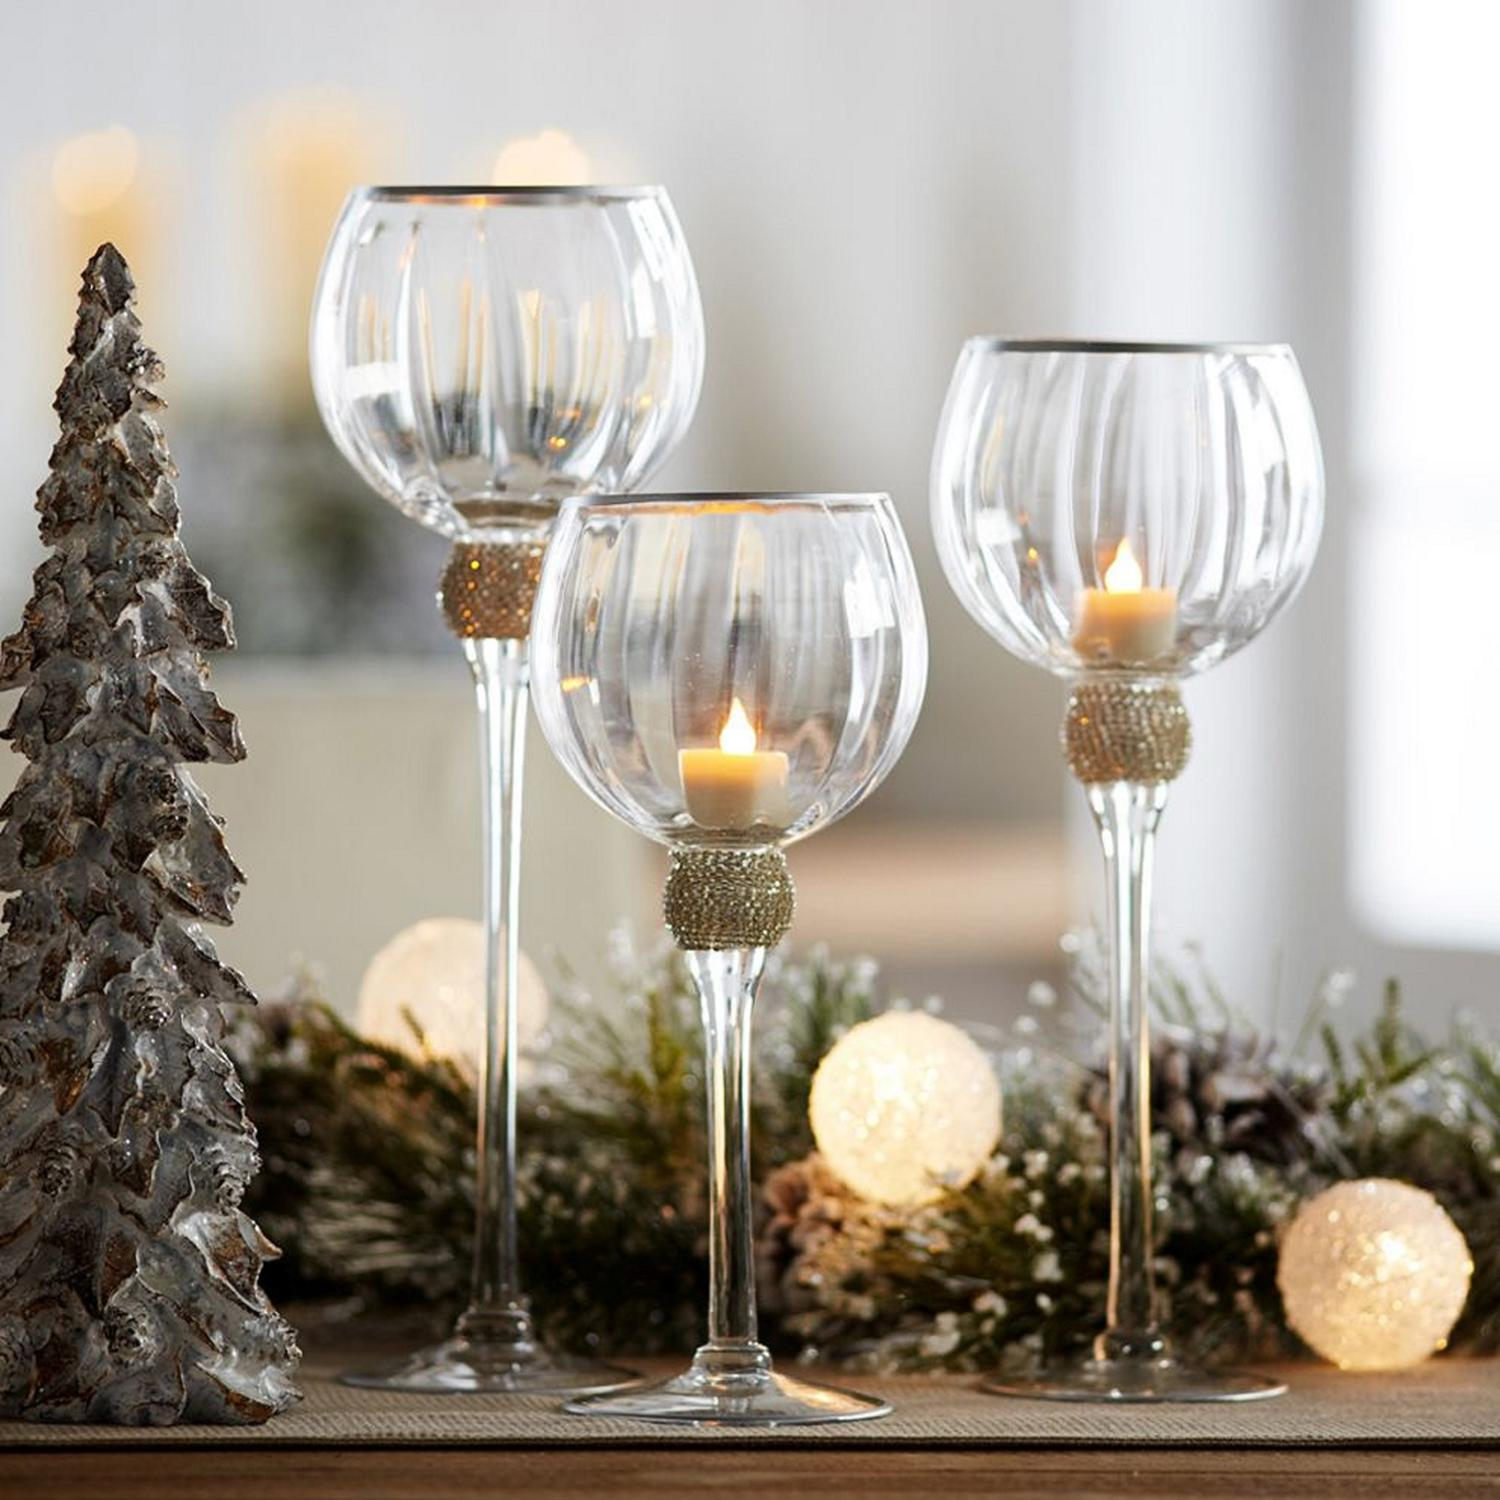 Set of 3 Beveled Glass Clear and Gold Accented Decorative Votive Candle Holders